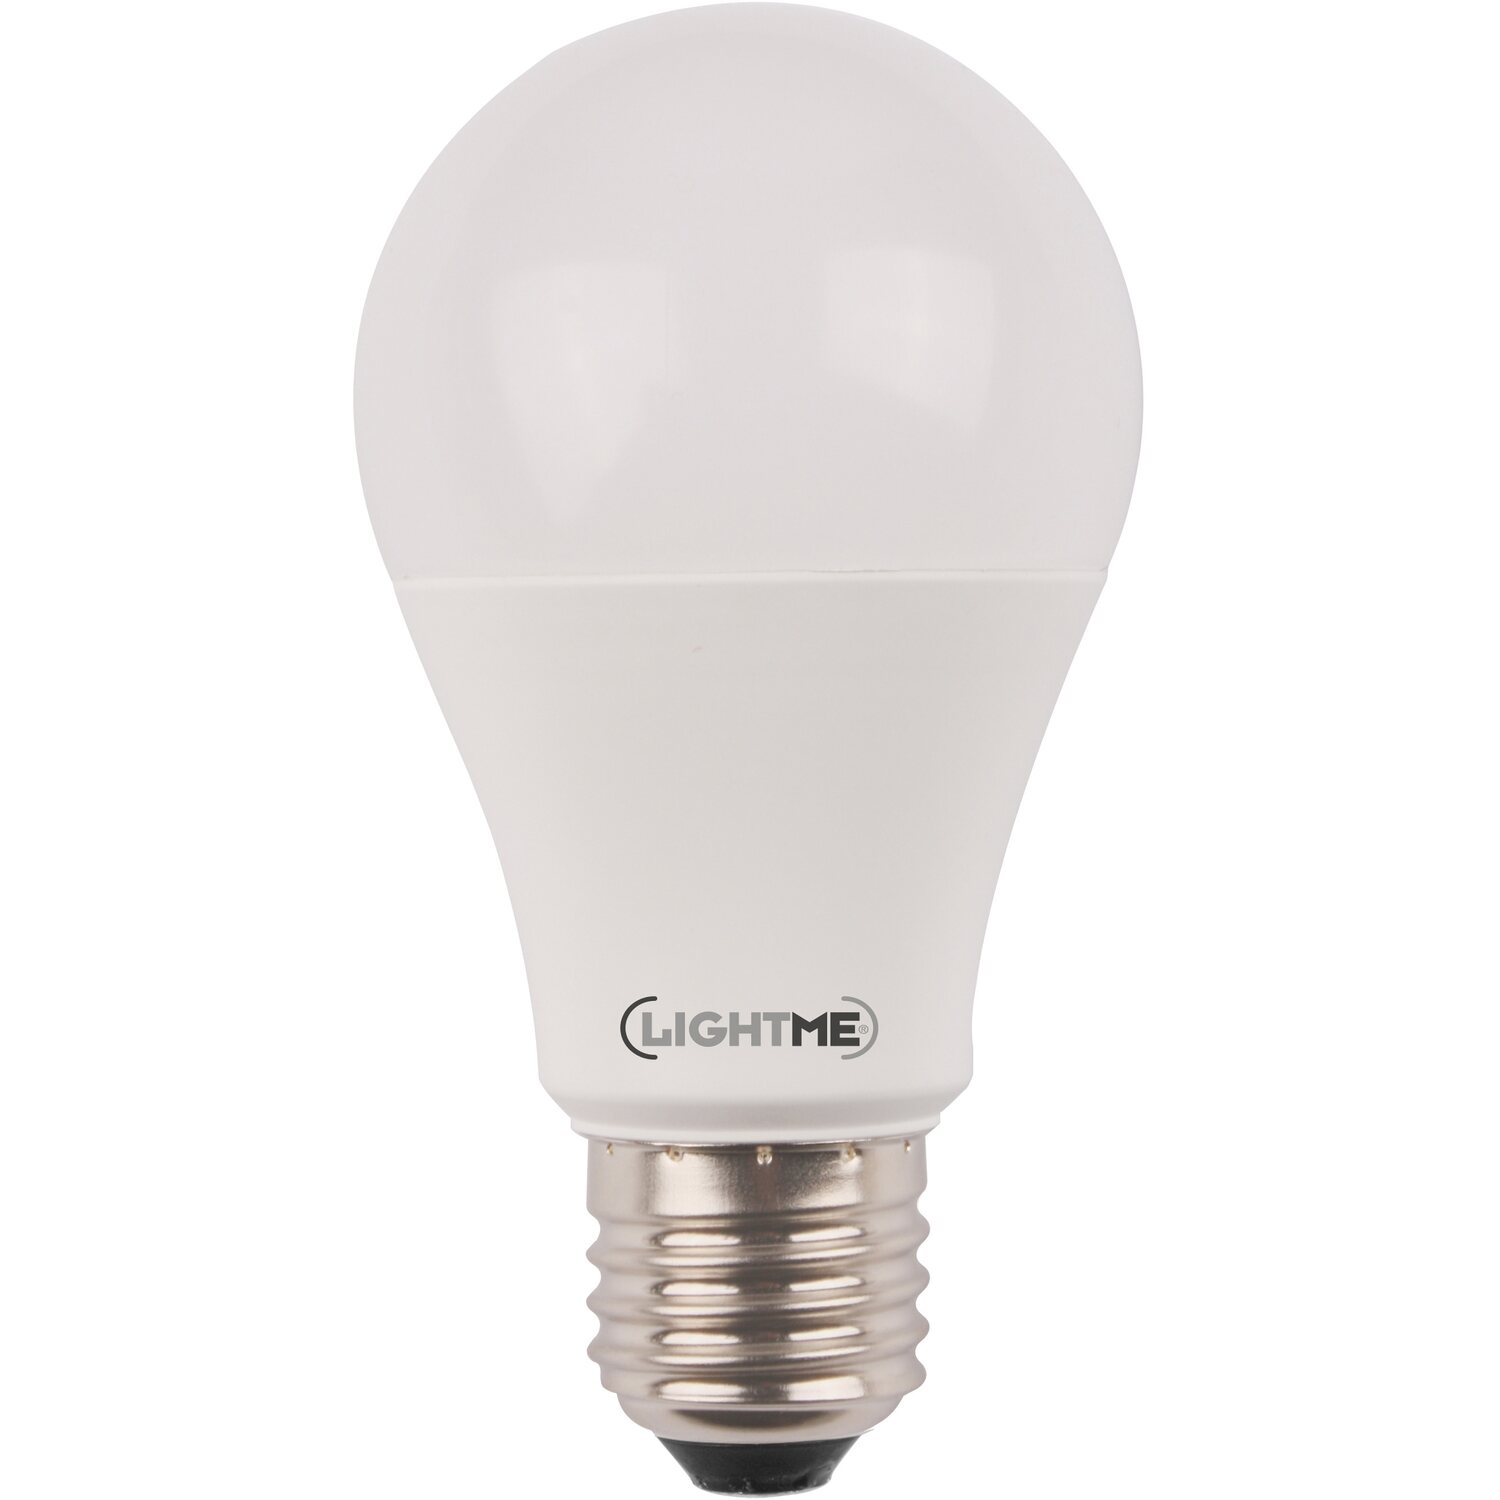 Lightme LED-Leuchtmittel Glühlampenform E27 / 6...